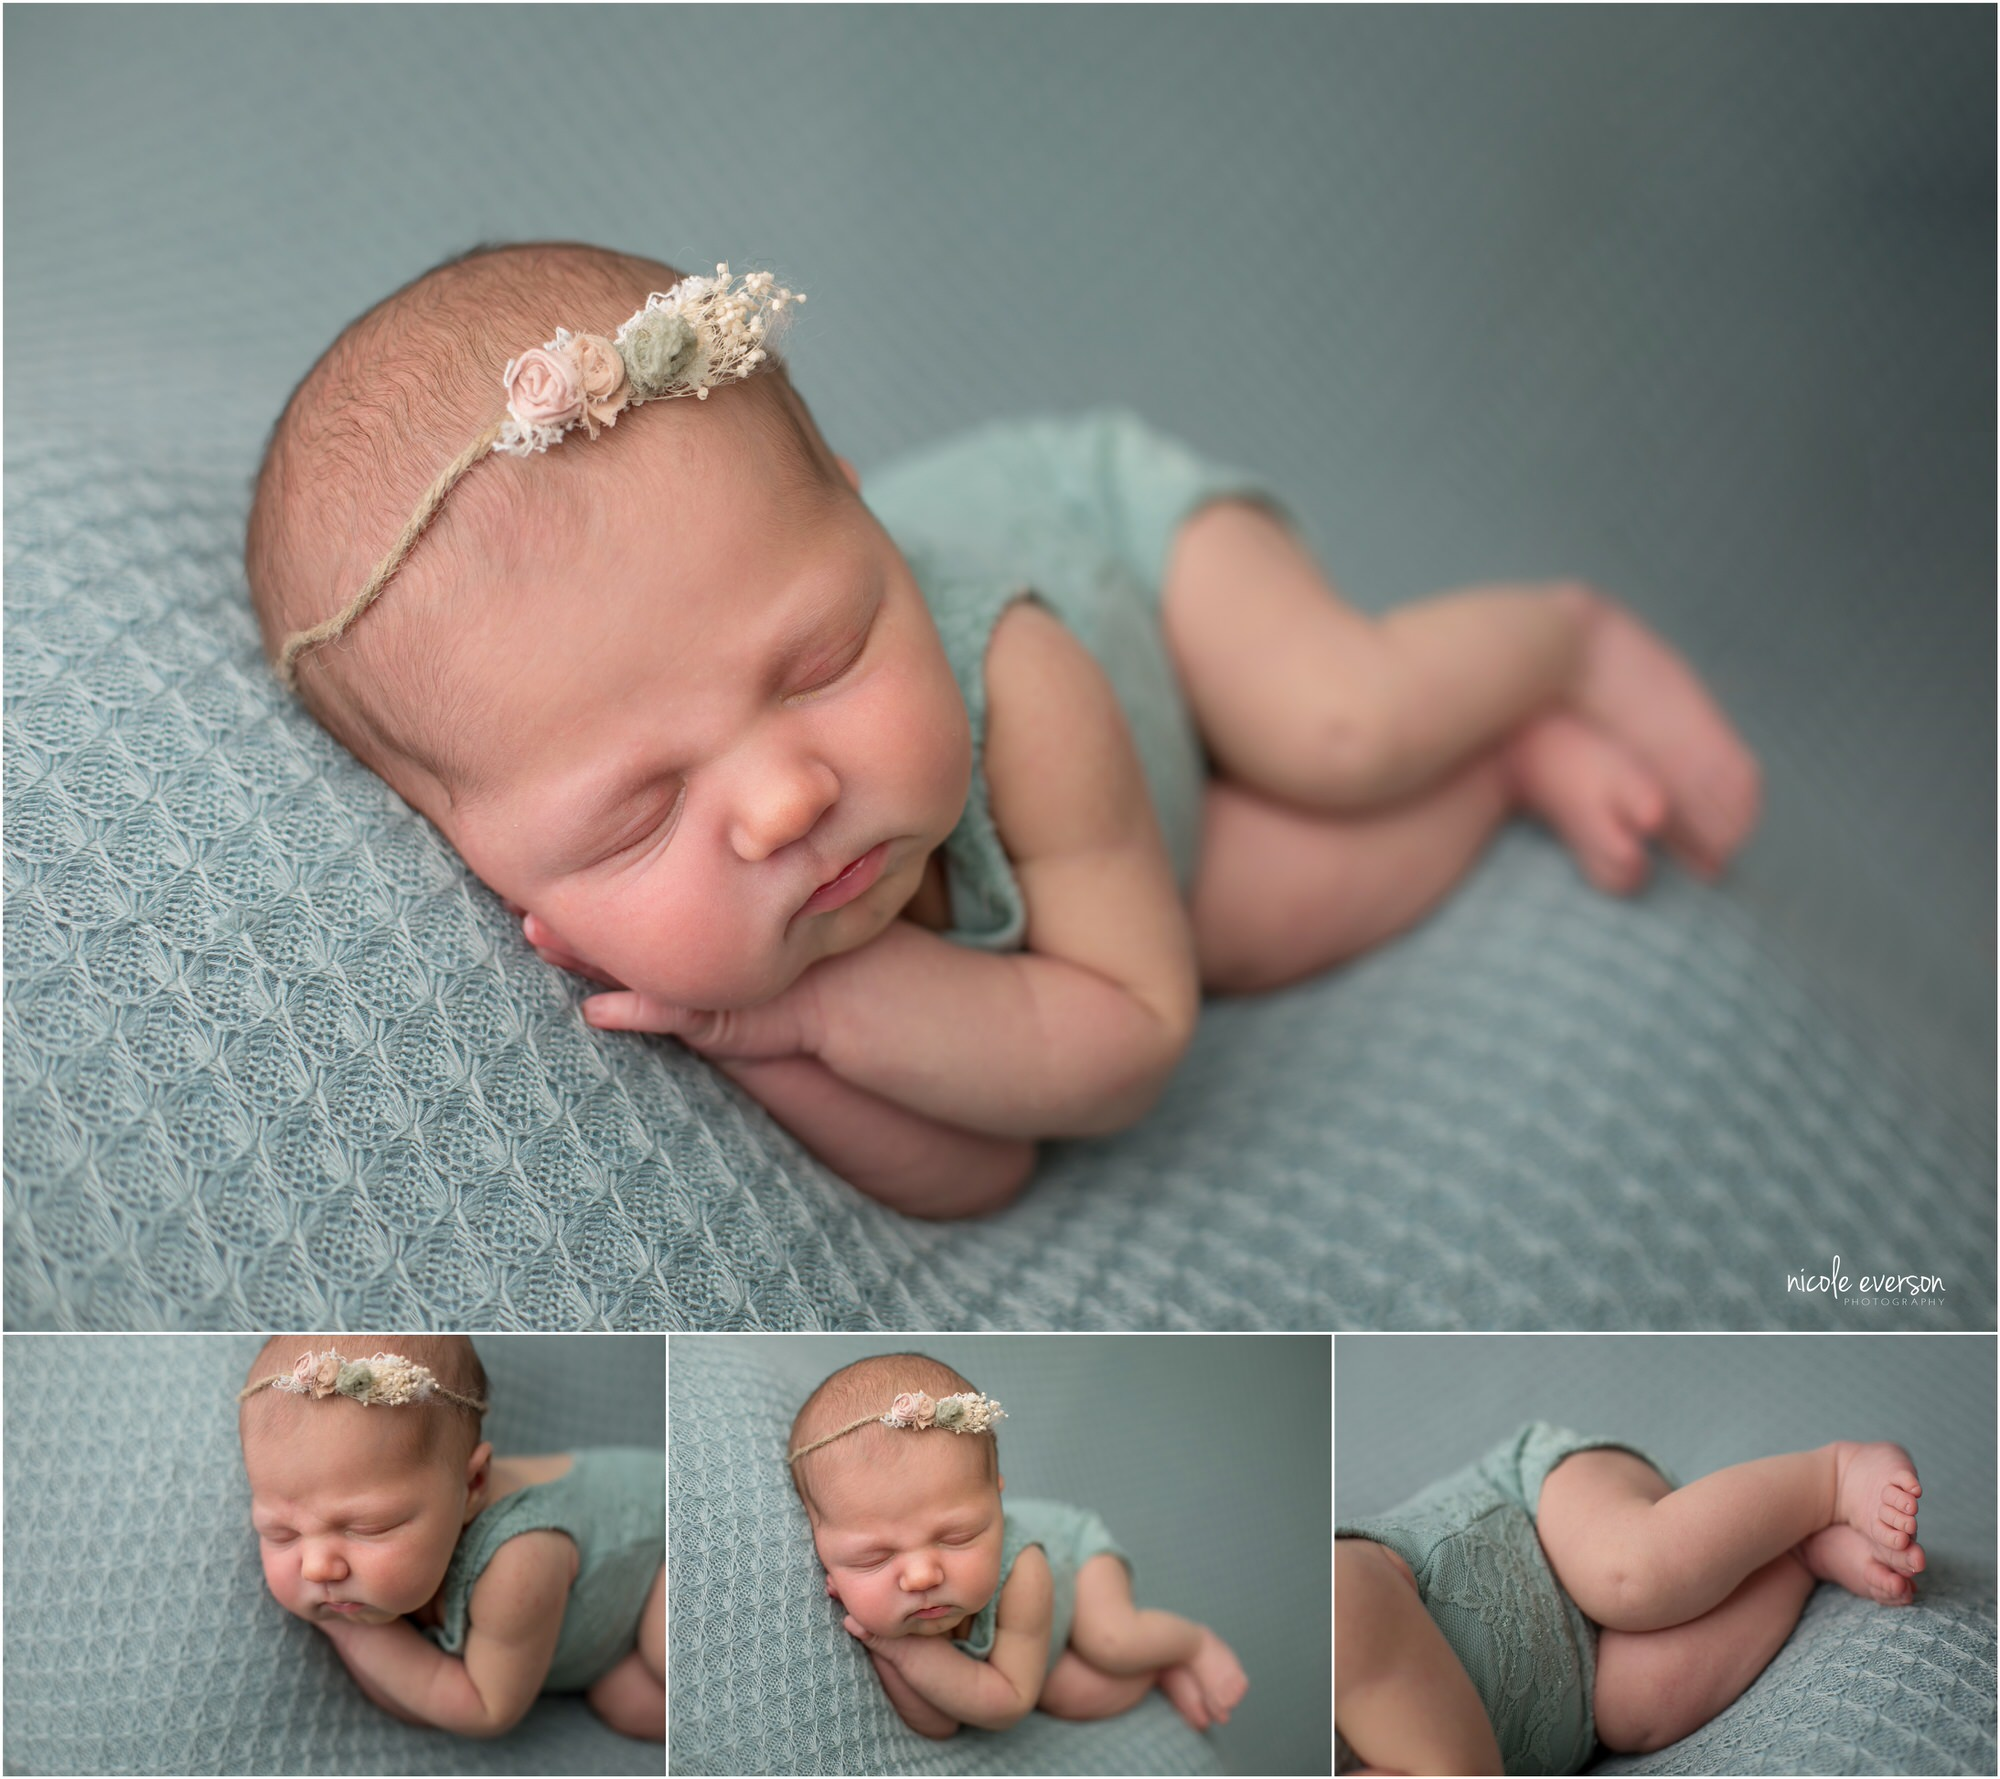 newborn pictures Nicole Everson Photography newborn studio